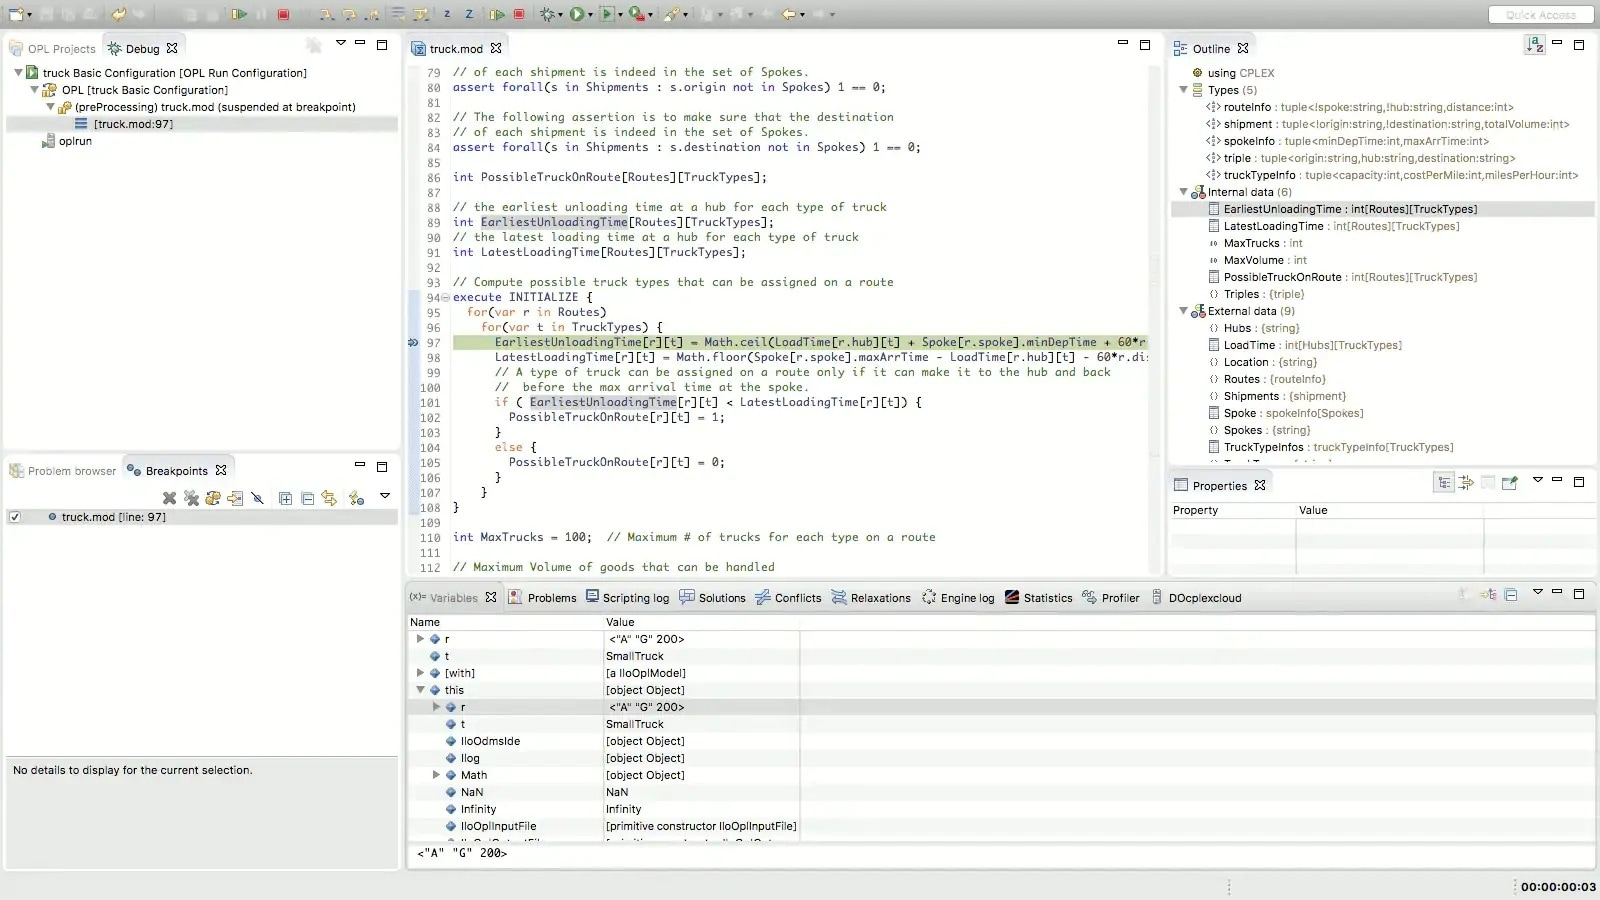 Screenshot showing the debugging process in OPL++